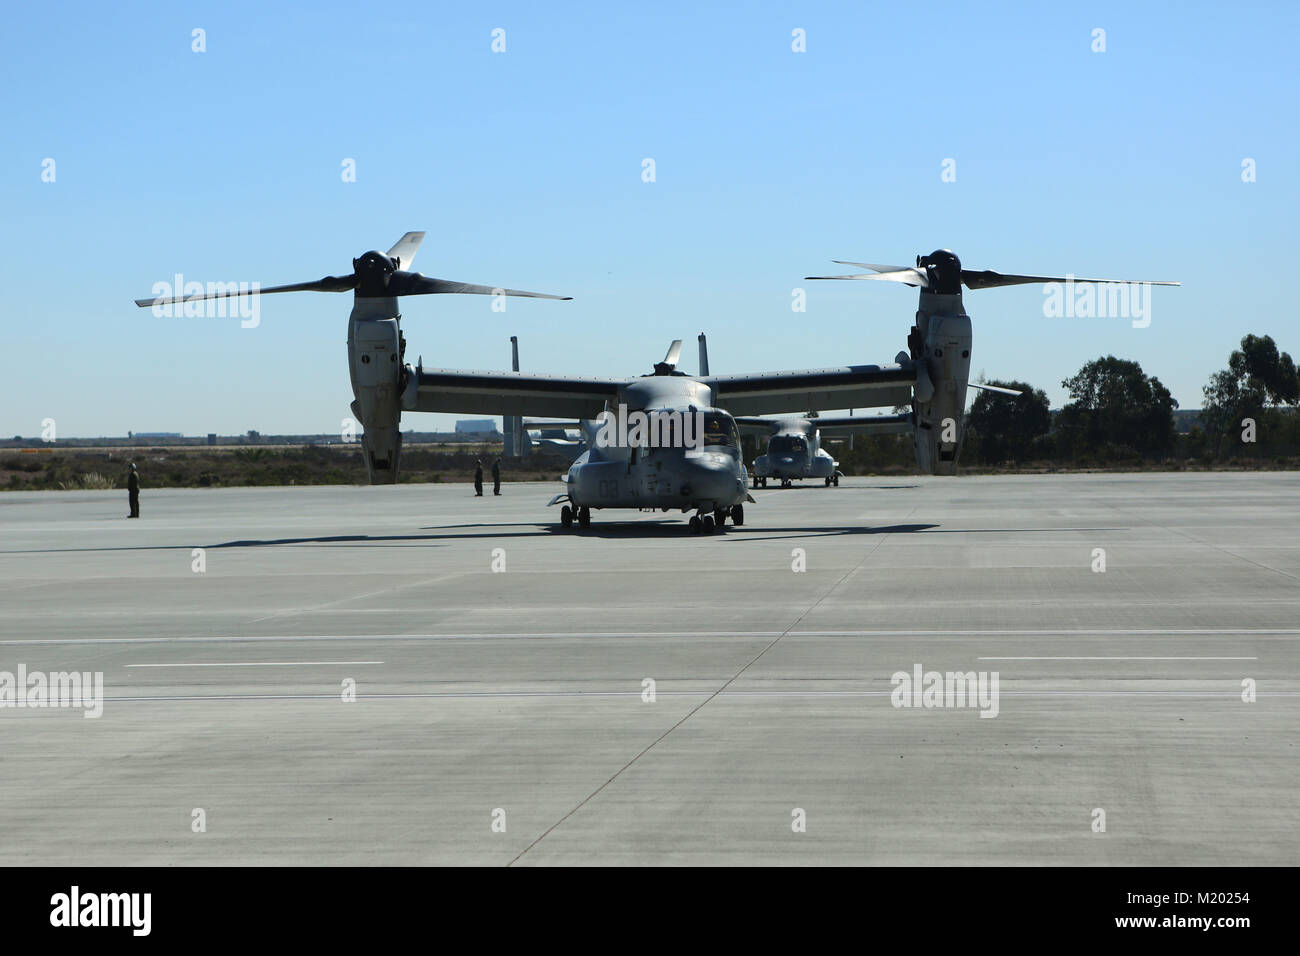 Marine Medium Tiltrotor Squadron (VMM) 161 (Reinforced) Ospreys return from the 15th Marine Expeditionary Unit at MCAS Miramar, Calif., Feb. 1. During the deployment, more than 4,500 Marines and Sailors of the America Amphibious Readiness Group and embarked 15th MEU conducted maritime security operations and multiple military-to-military exchanges with partner nations in support of regional security, stability and the free flow of maritime commerce in the Indo-Asia-Pacific and Middle East regions. (U.S. Marine Corps photo by Sgt. David Bickel/Released) Stock Photo